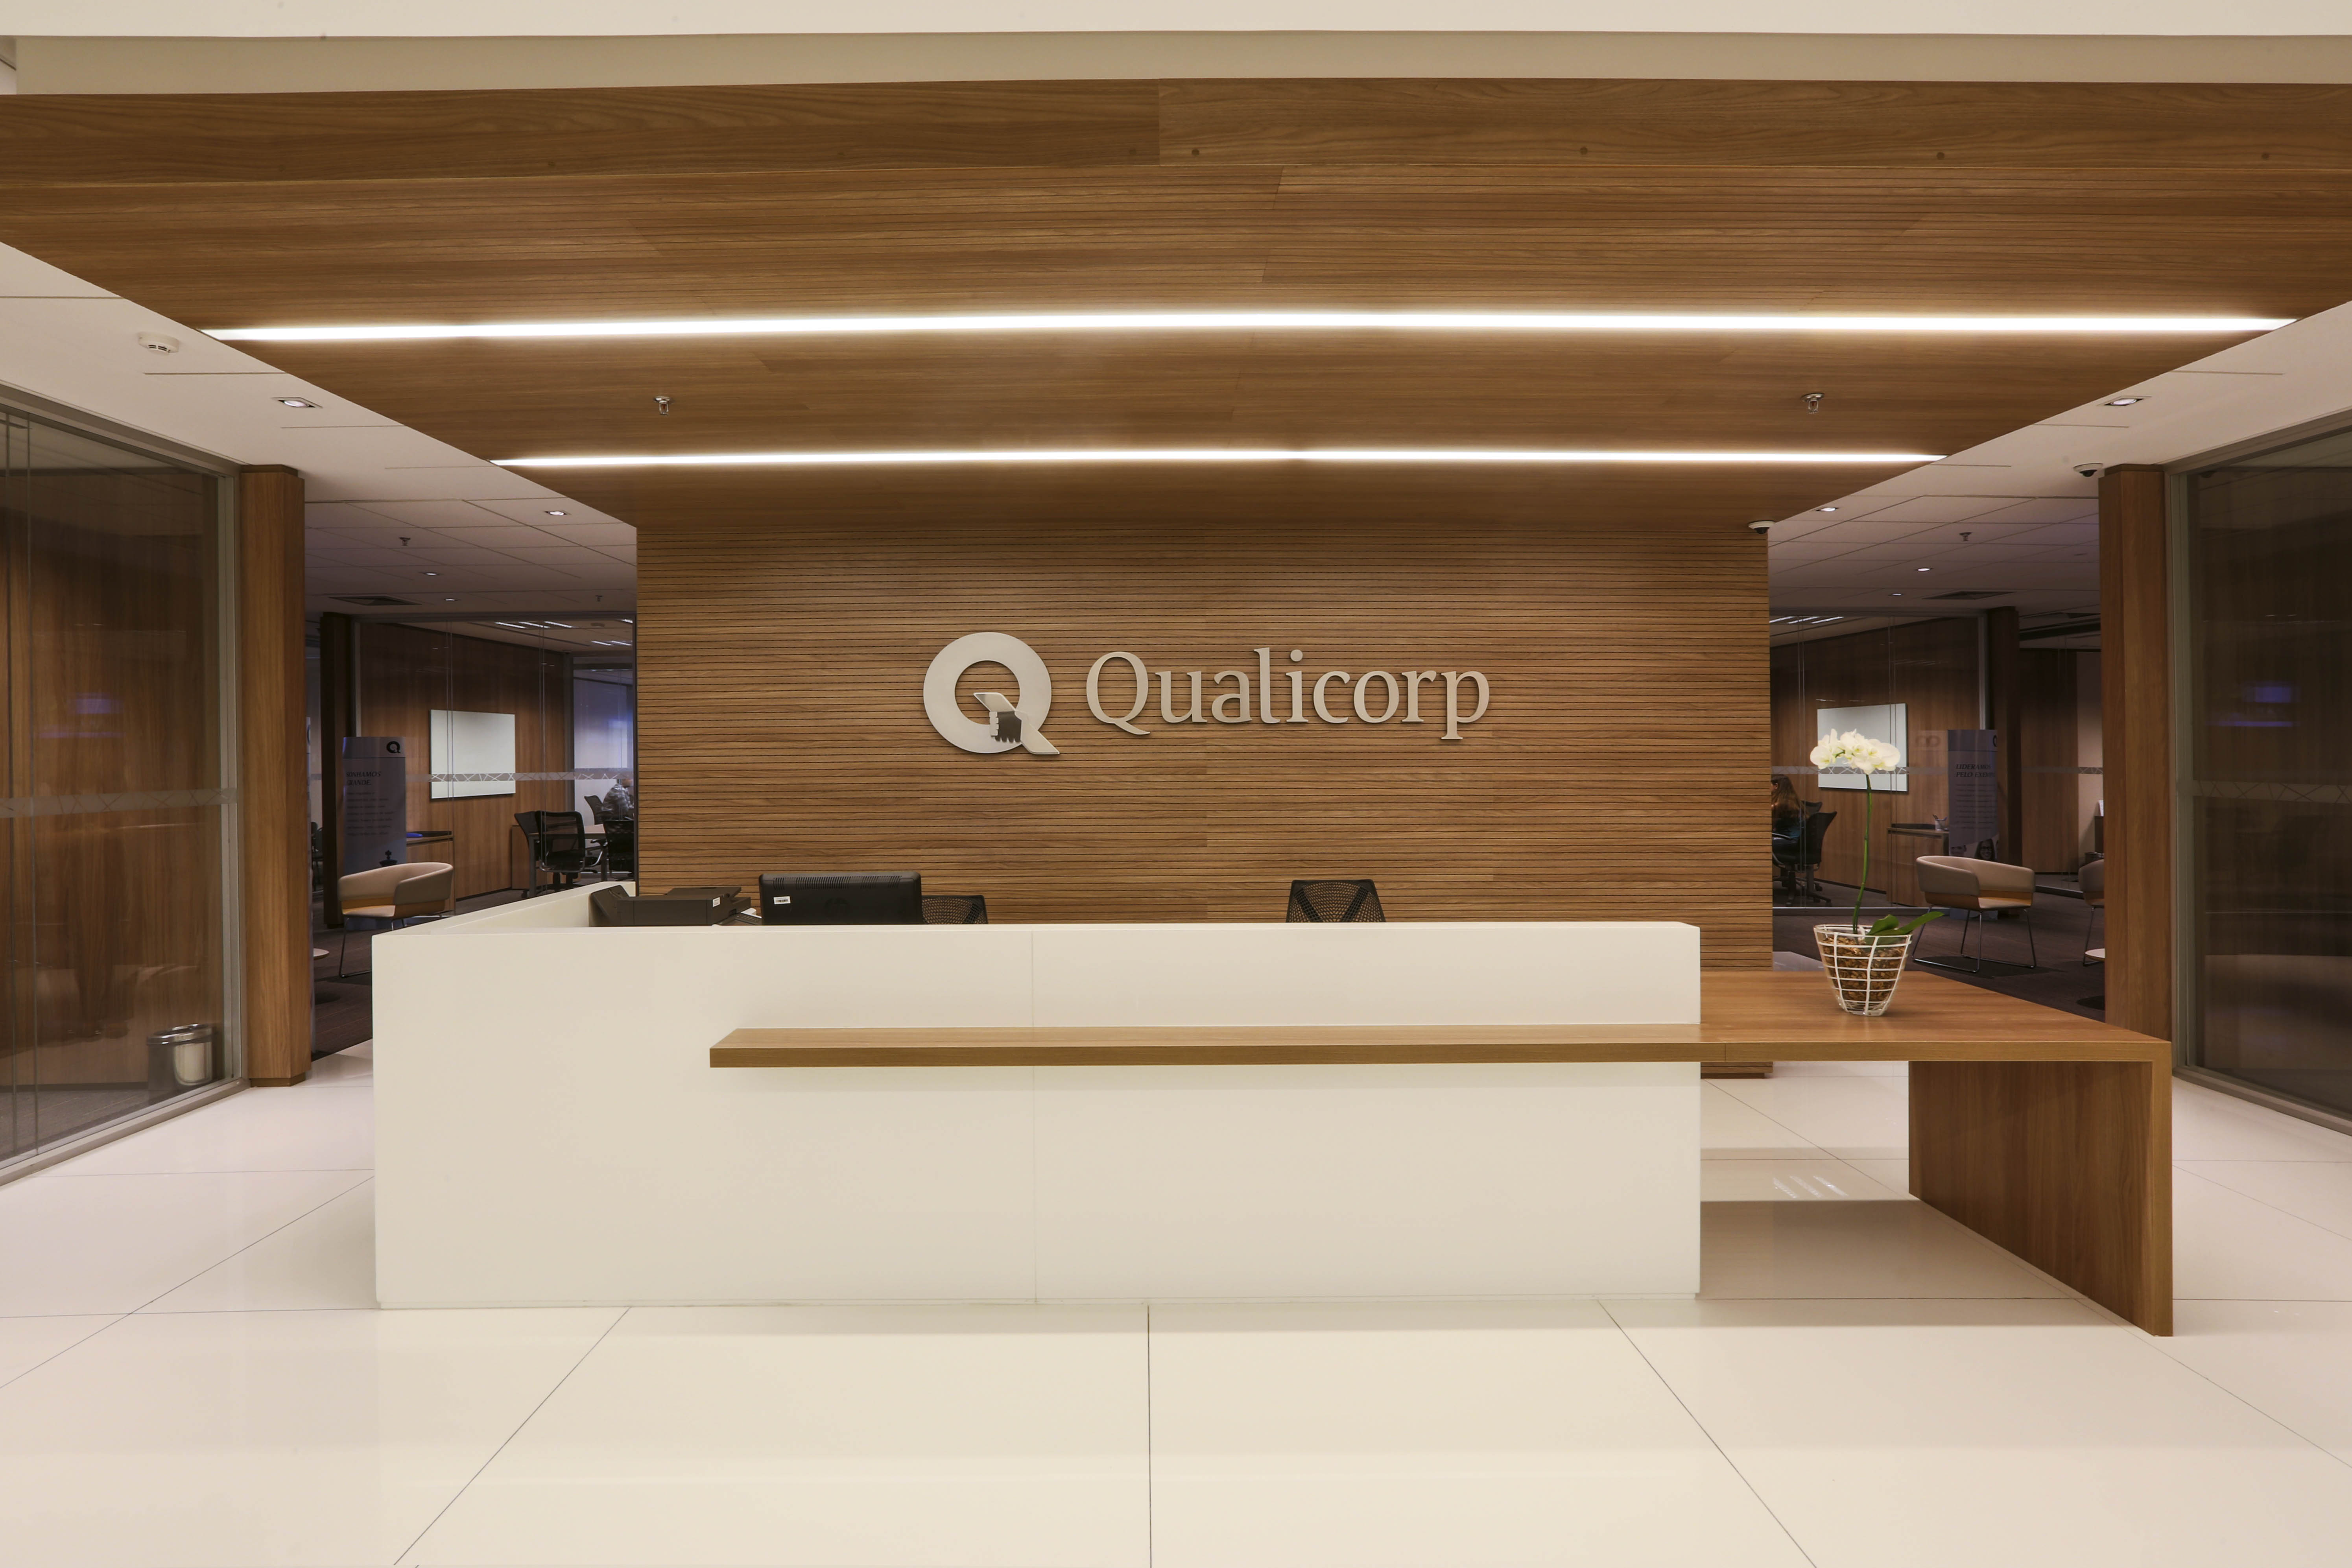 Qualicorp Office